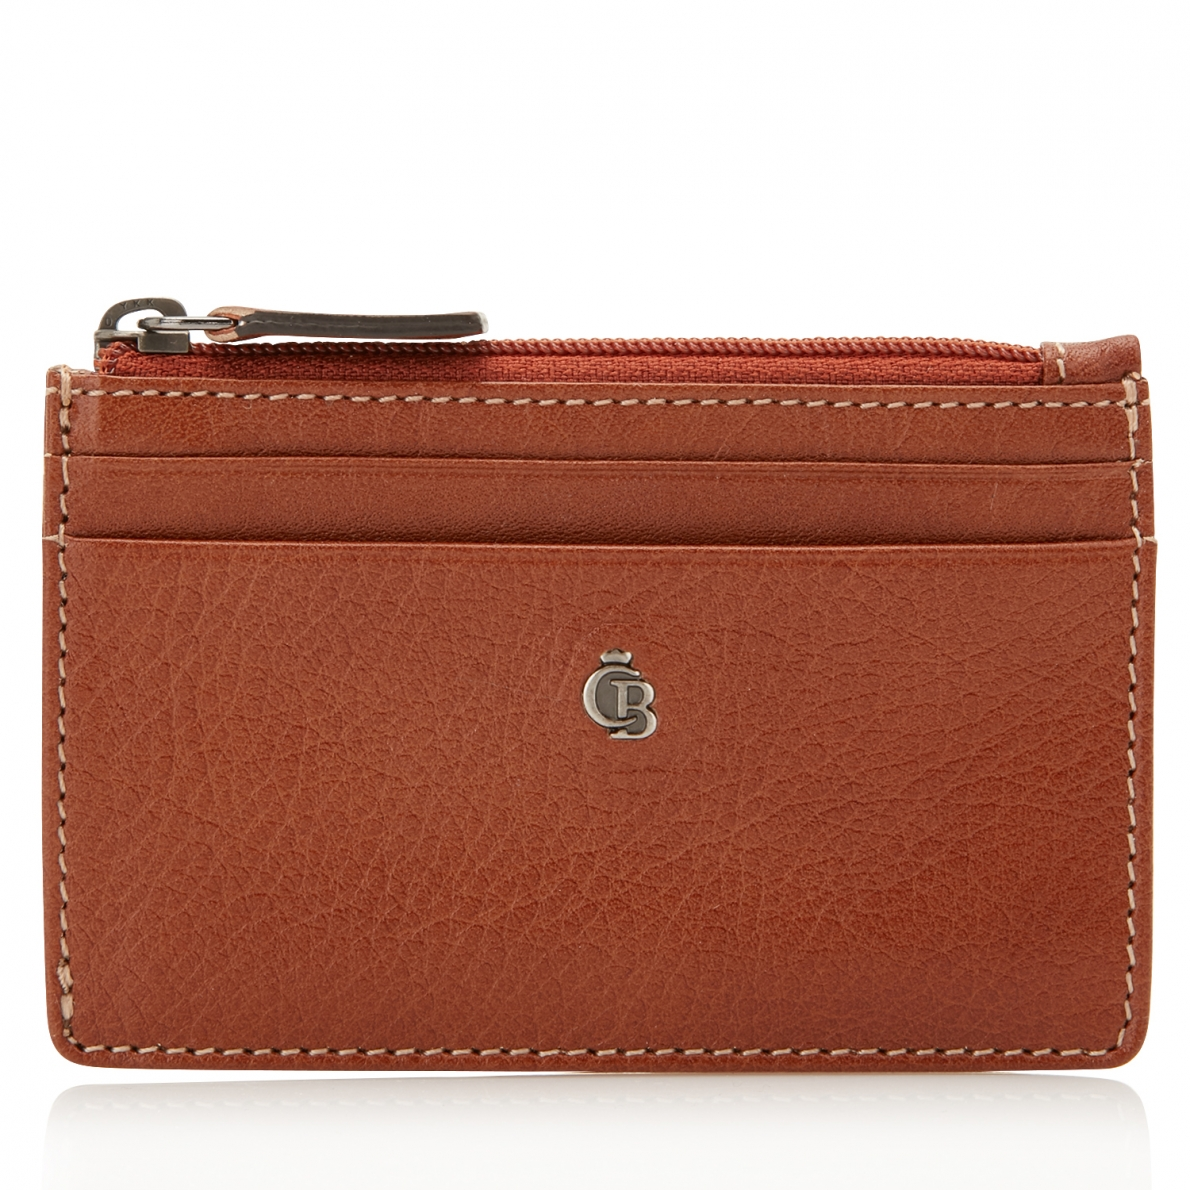 Castelijn & Beerens Nova Credit Card Case Tan